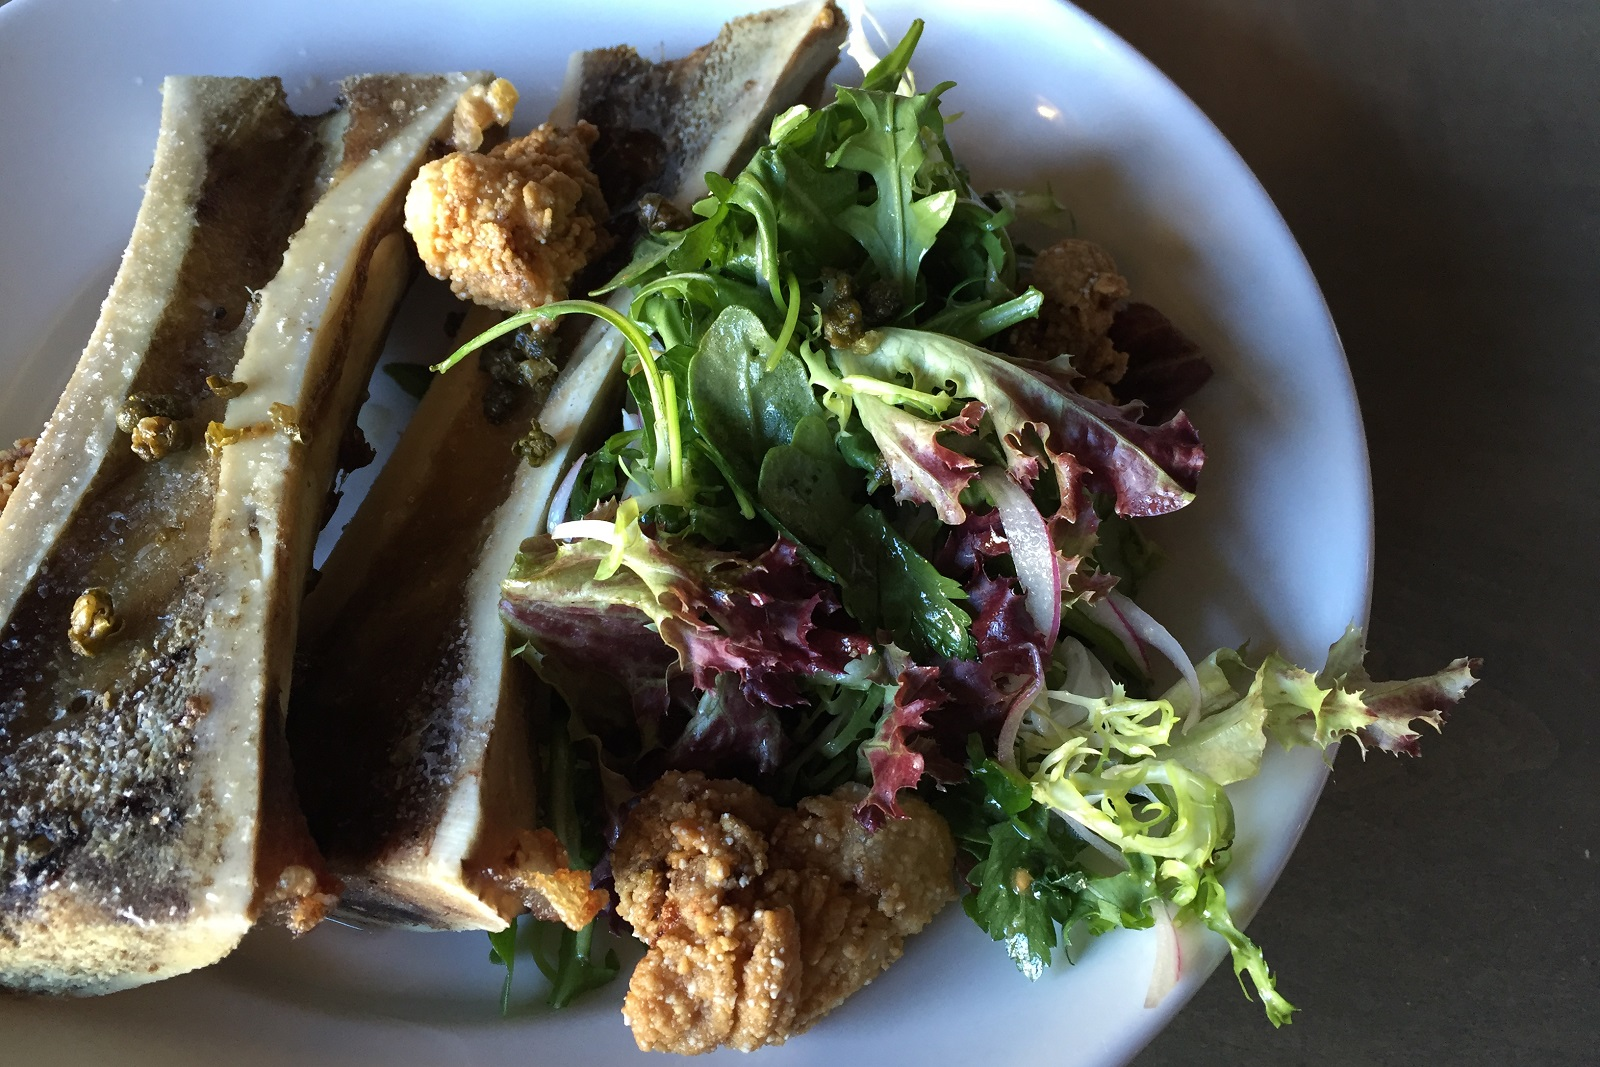 Fried capers and a lightly dressed salad offer pleasant counterbalance to unctuous bone marrow in this Thin Man starter. (Caitlin Hartney/Special to The News)